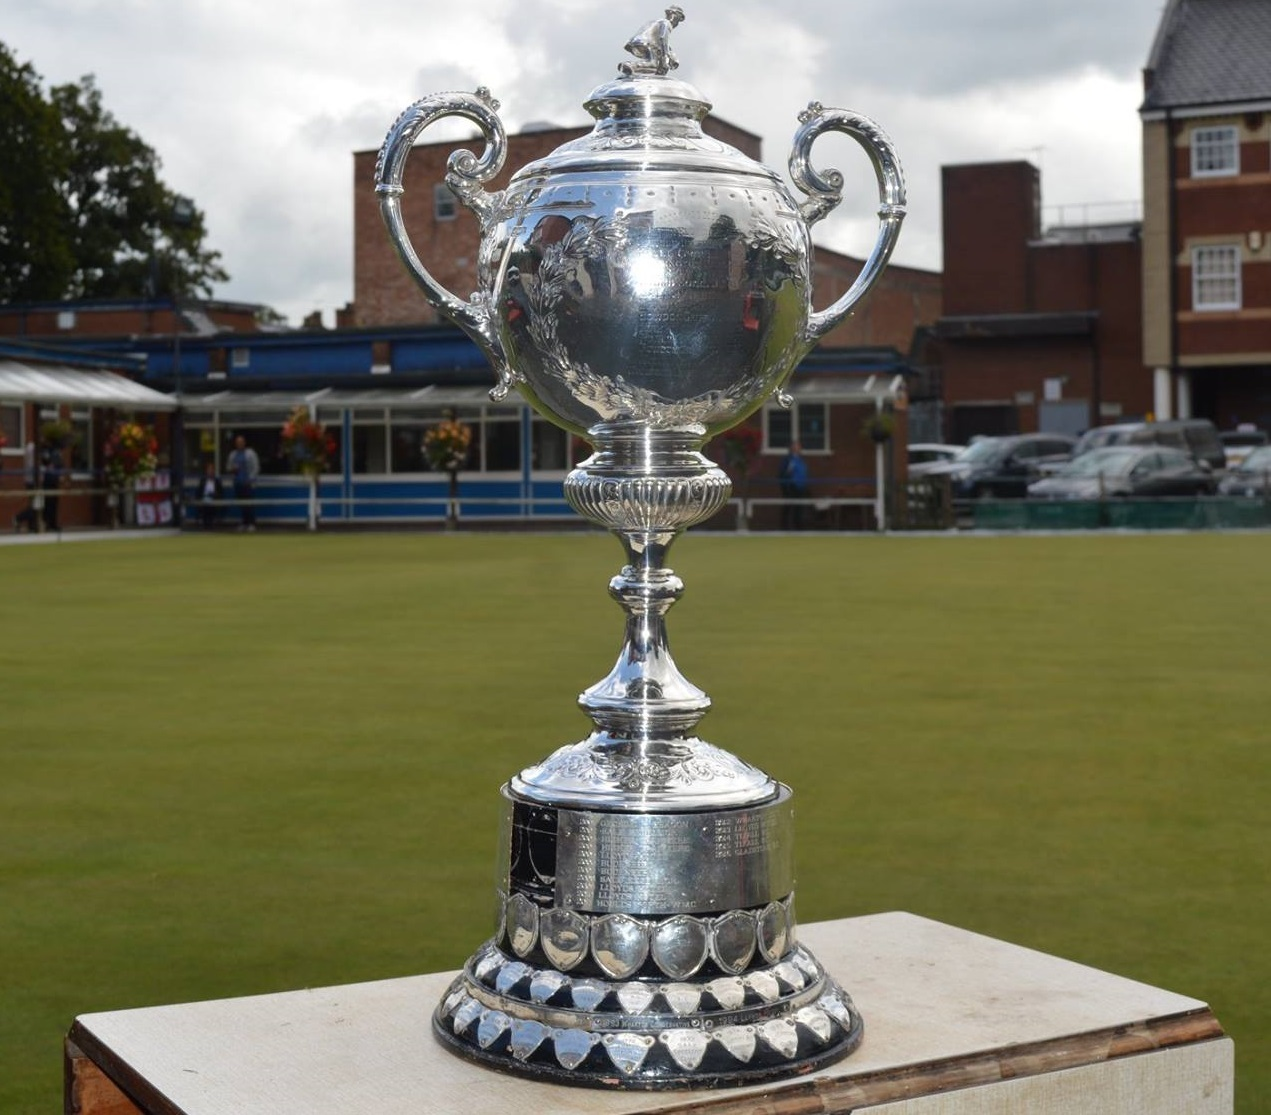 Wharton Cons were runners-up in last season's Cheshire County Bowling Association Brunner Cup final following a defeat to Tixall in the final. They hope to go one better in 2019